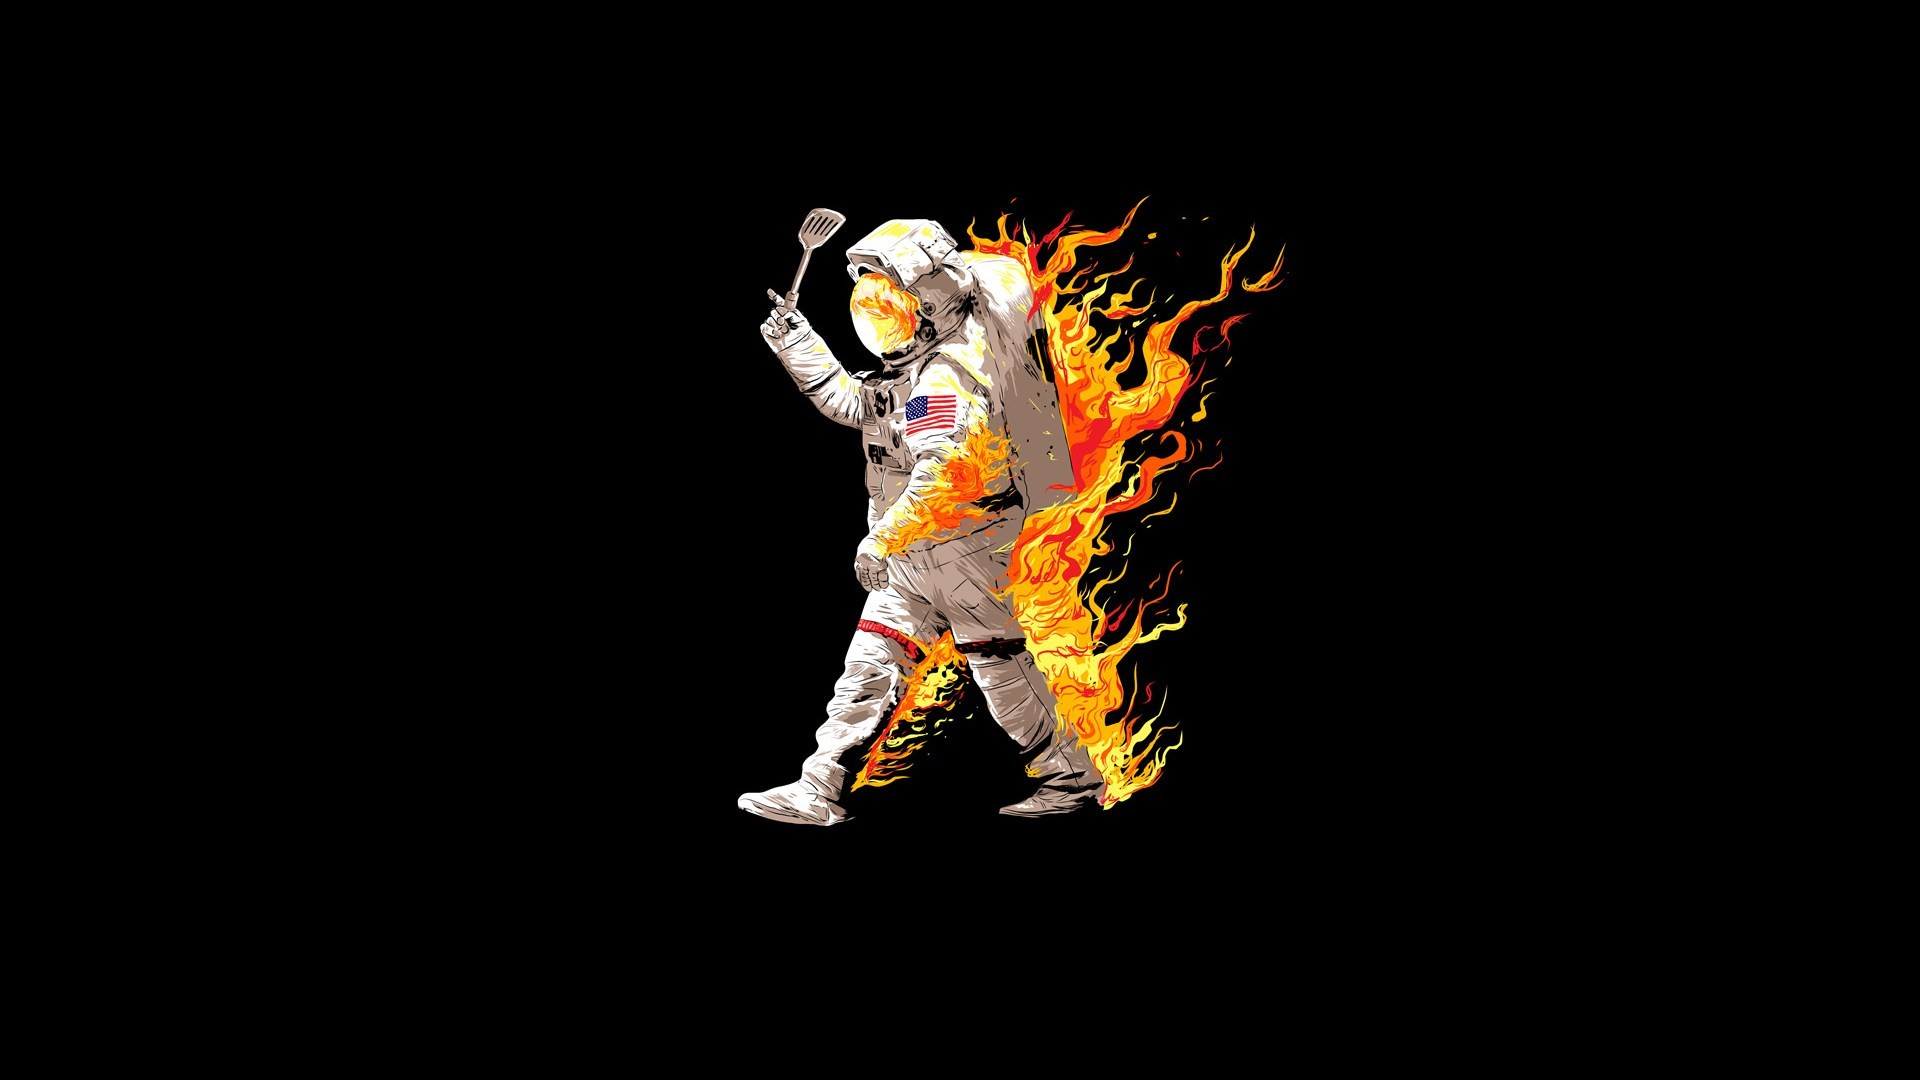 1920x1080 Wallpaper Astronaut On Moon